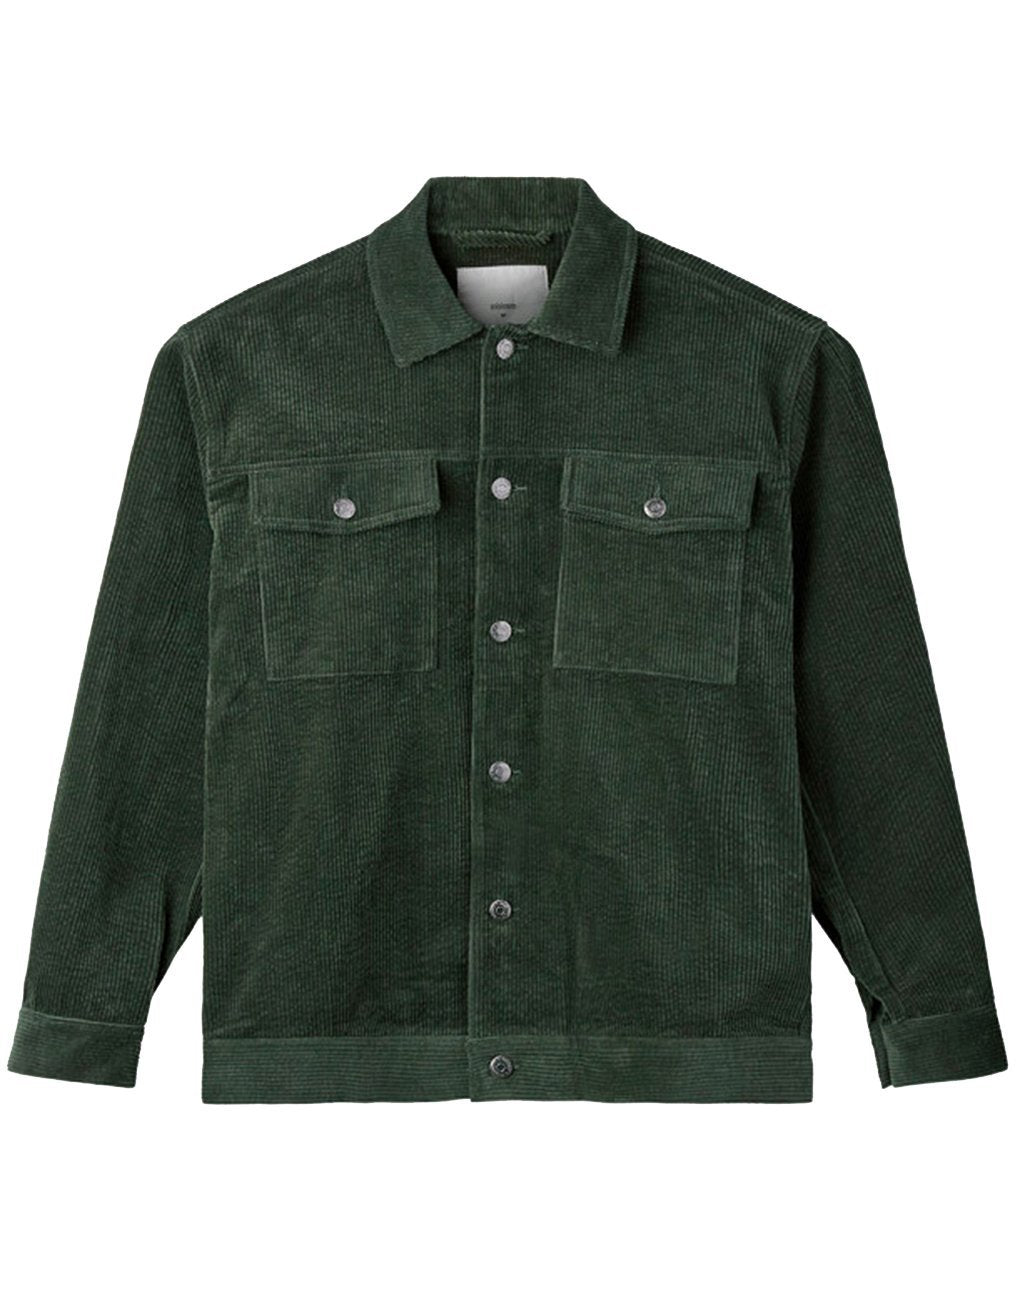 Minimum Trols Fløjl Overshirt